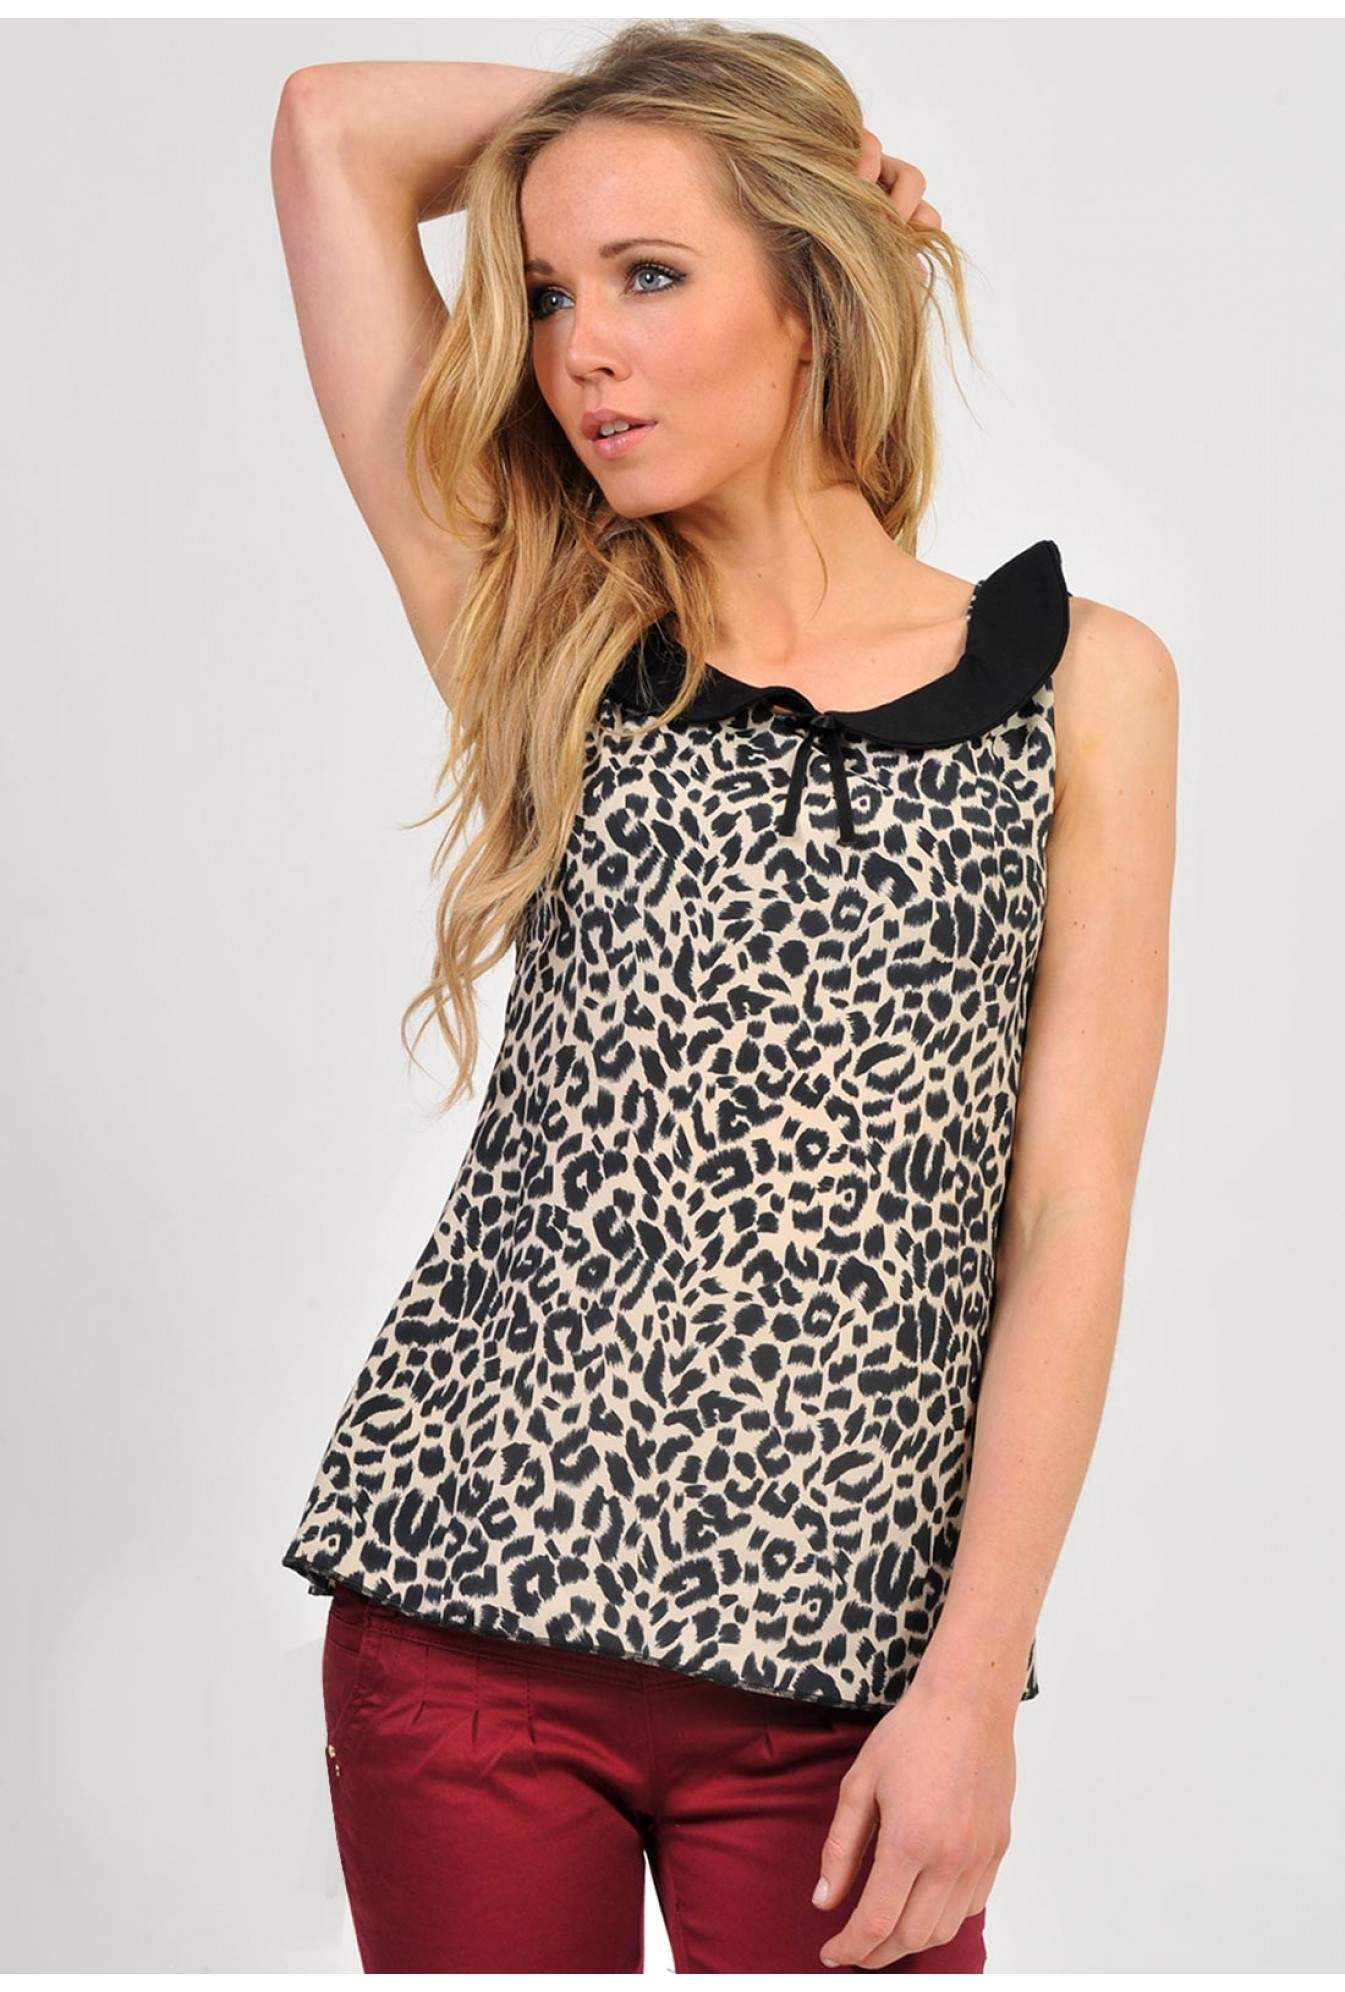 94c212351ad2bb More Views. Betty Peter Pan Leopard Top